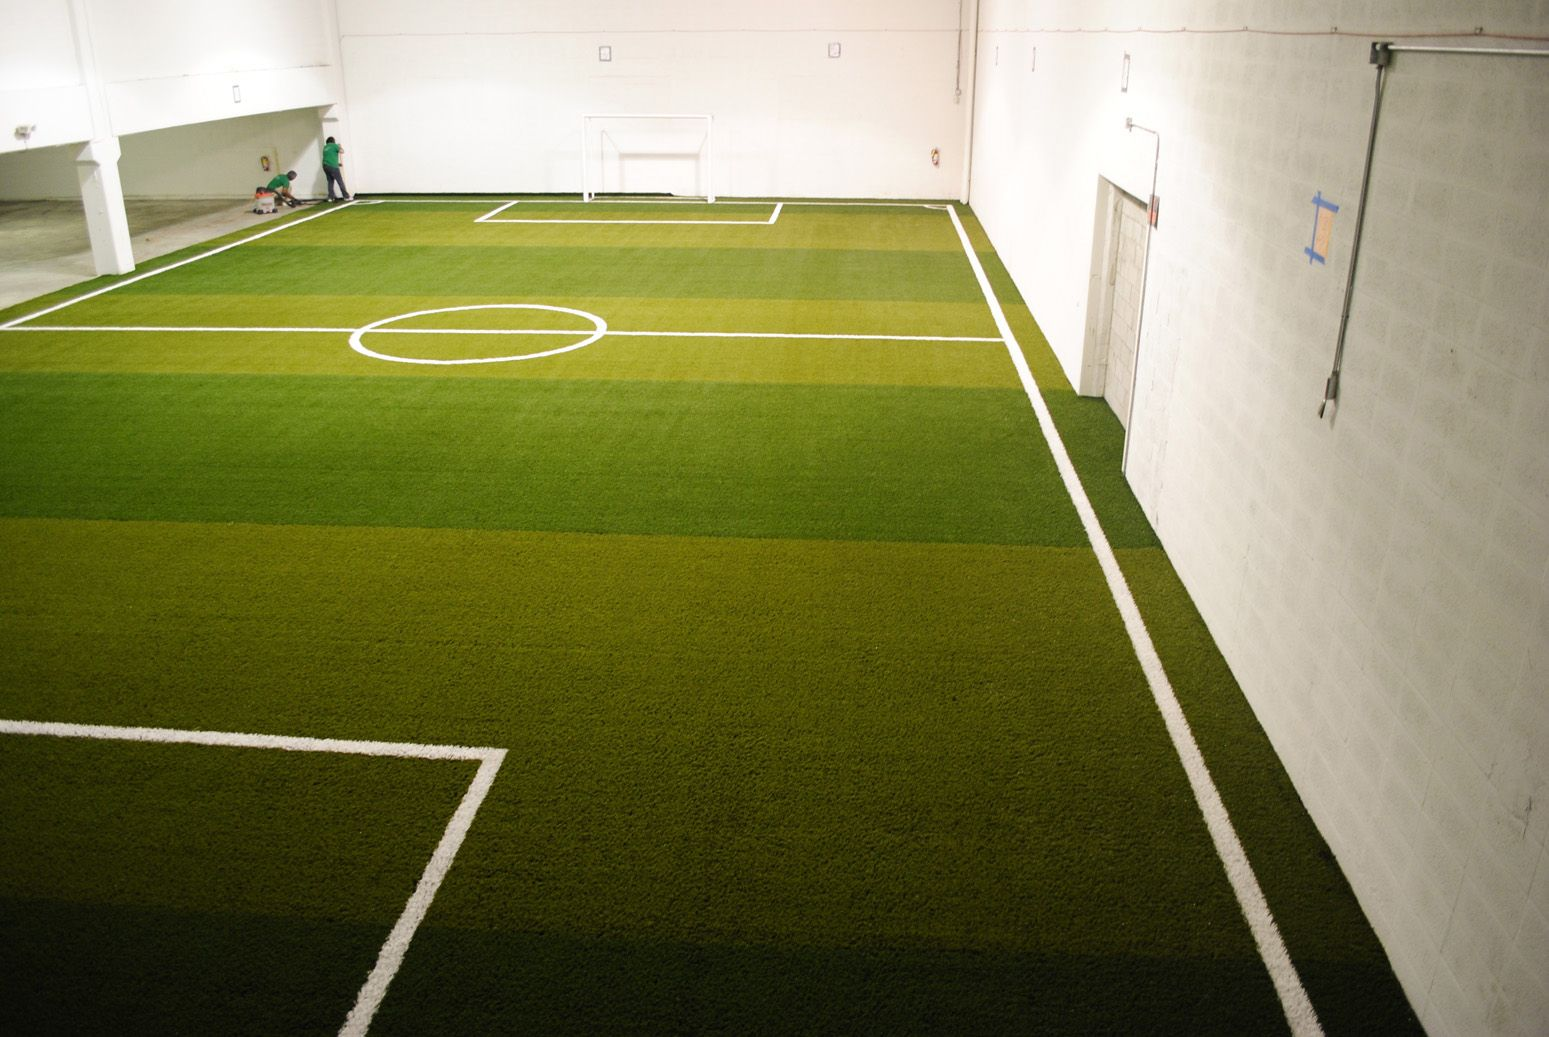 In-Door Soccer Fields Are The New Trend Now Days. They Are